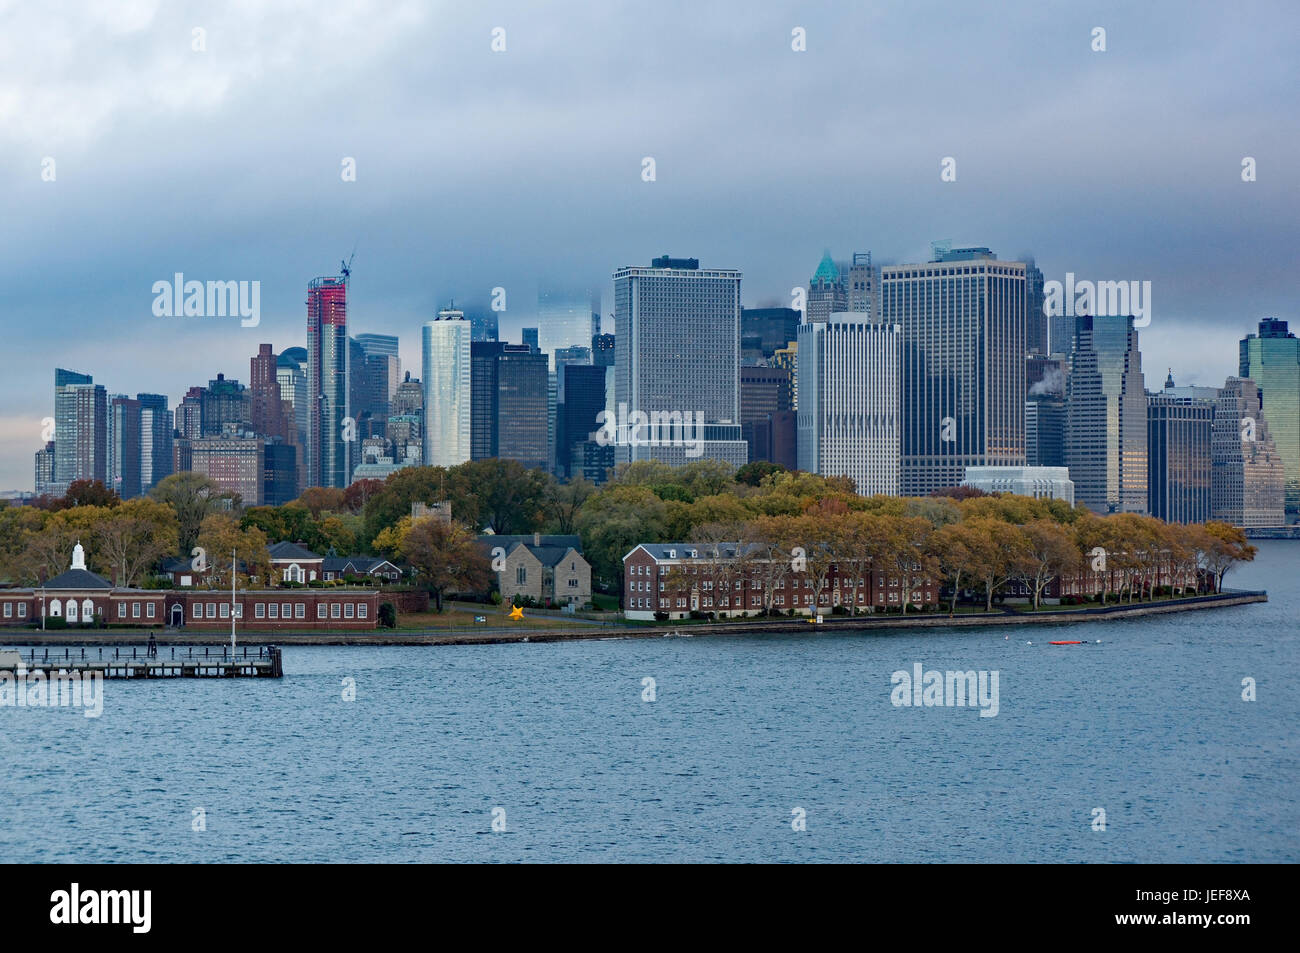 New York city is a cosmopolitan city on the east coast of the United States., New York City ist eine Weltstadt an - Stock Image